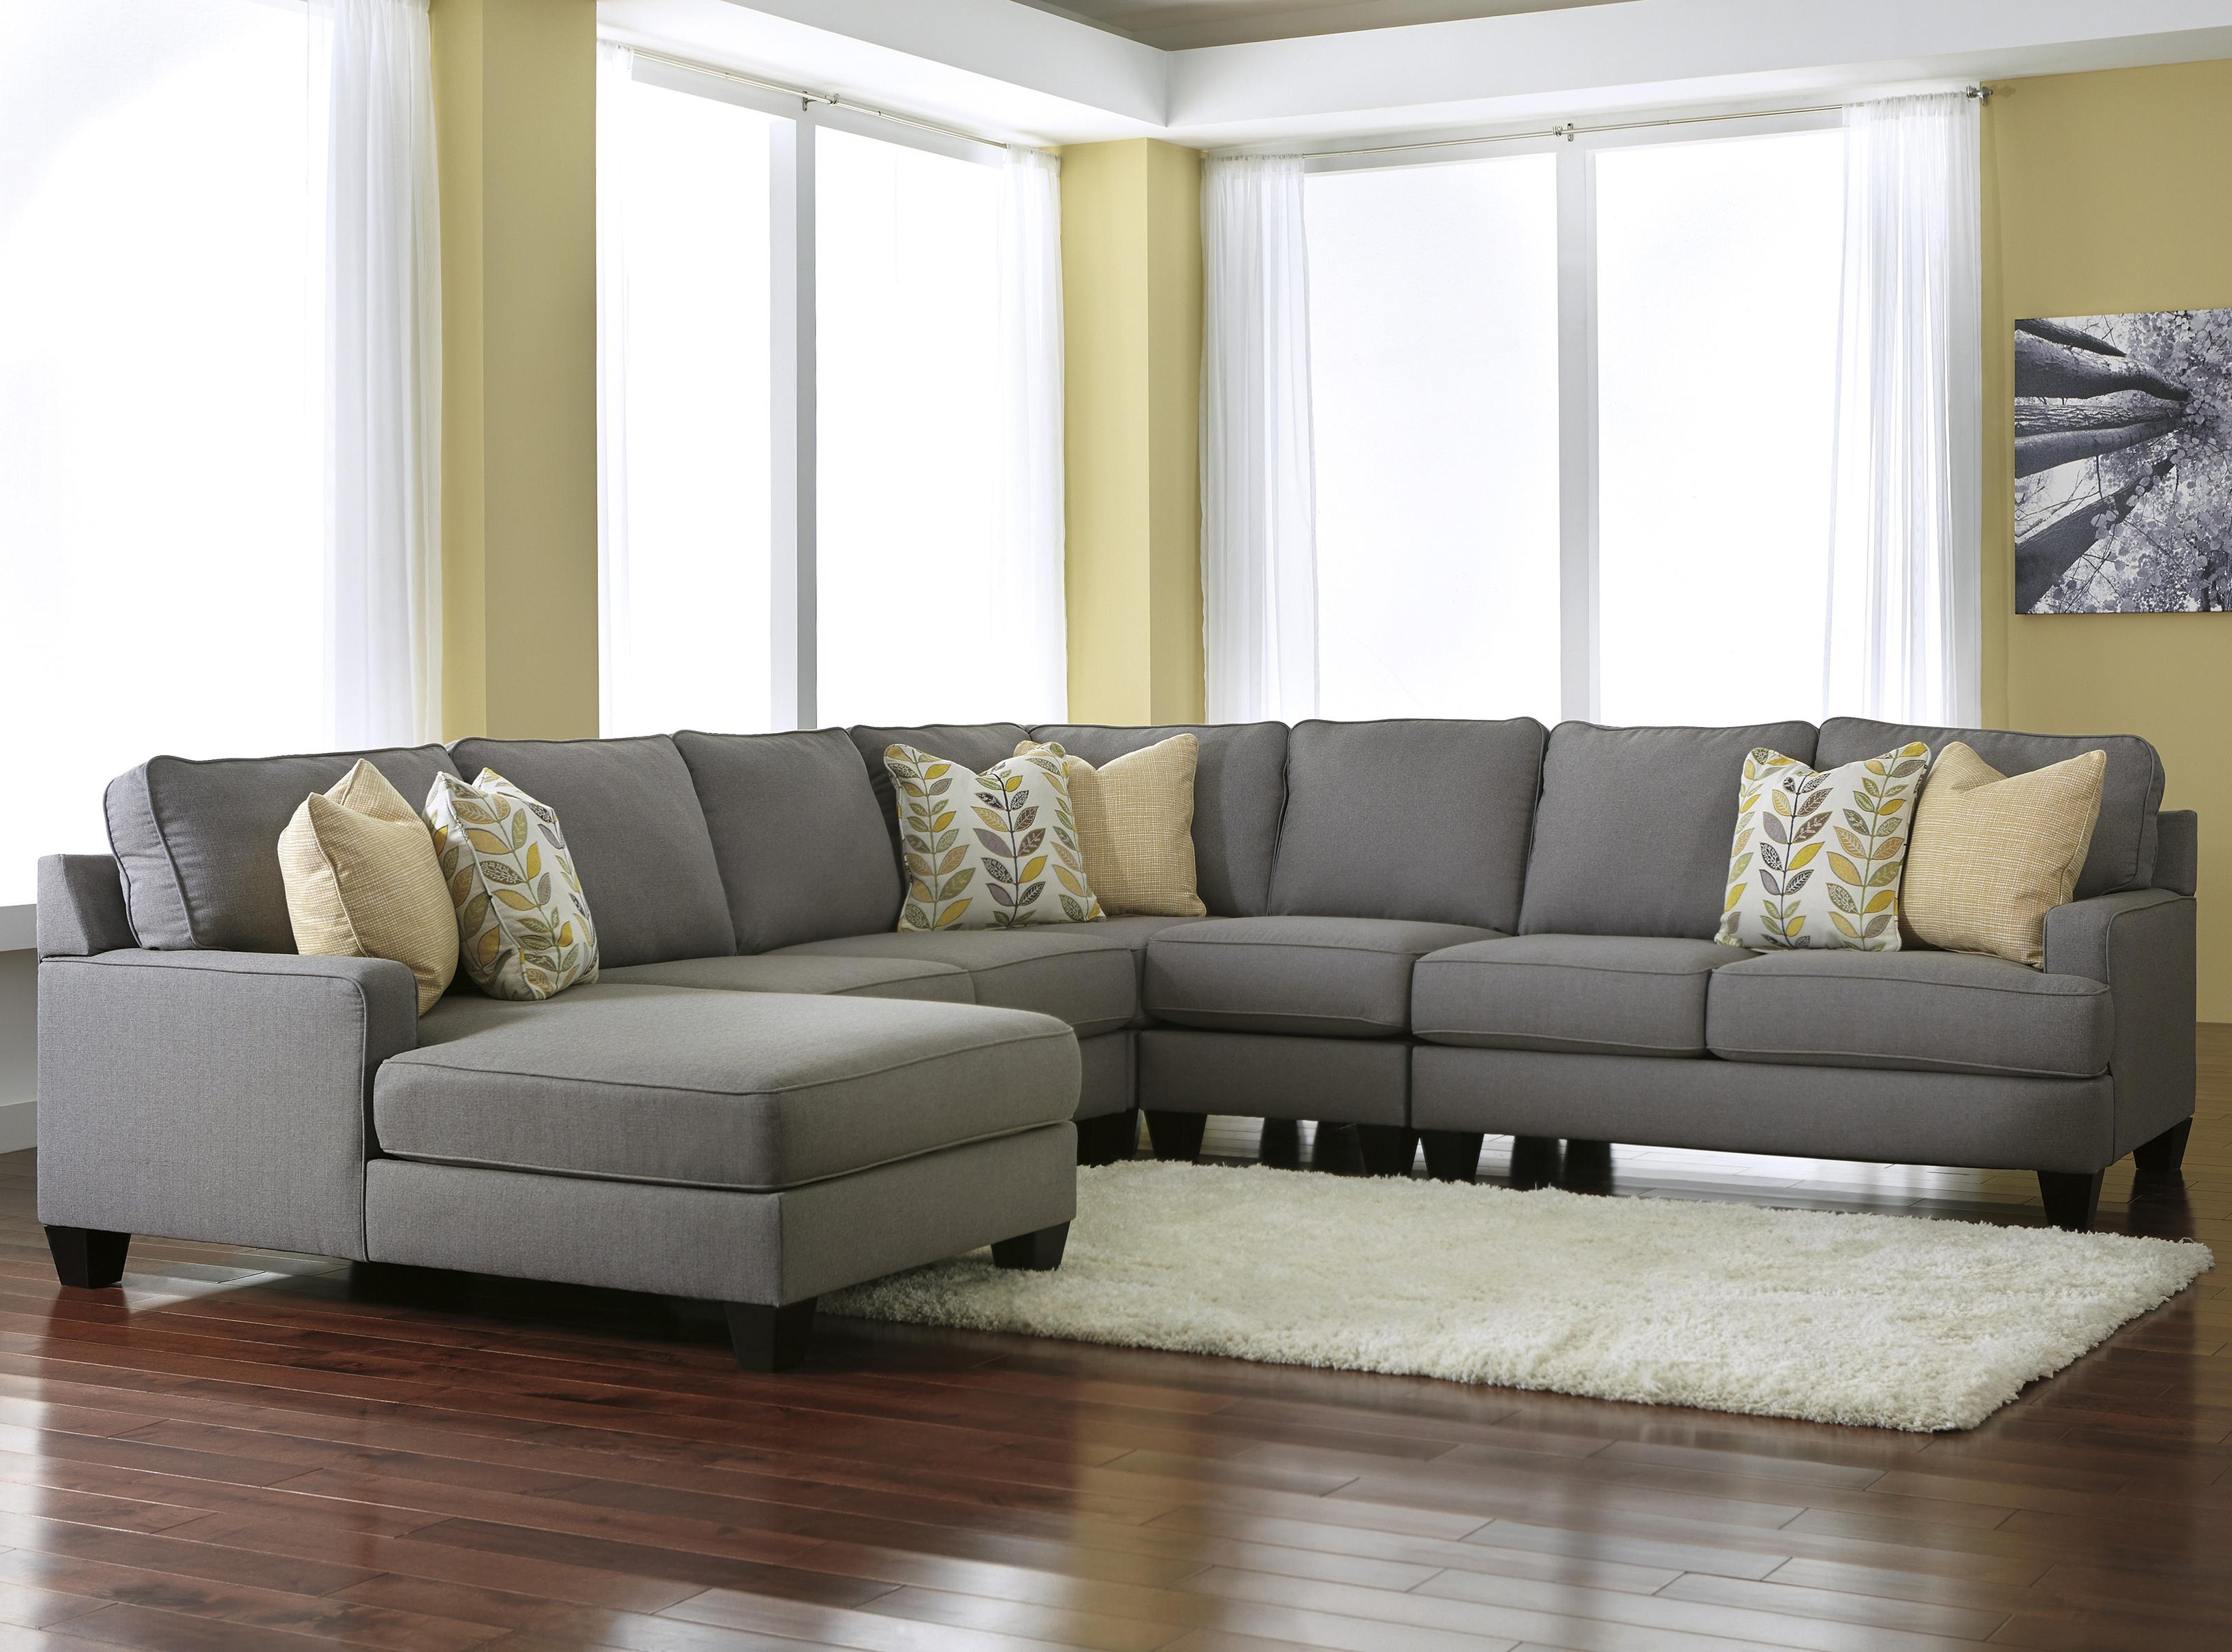 sofas discount american white room sofa sets sectional black rooms freight moo motley mn furniture living